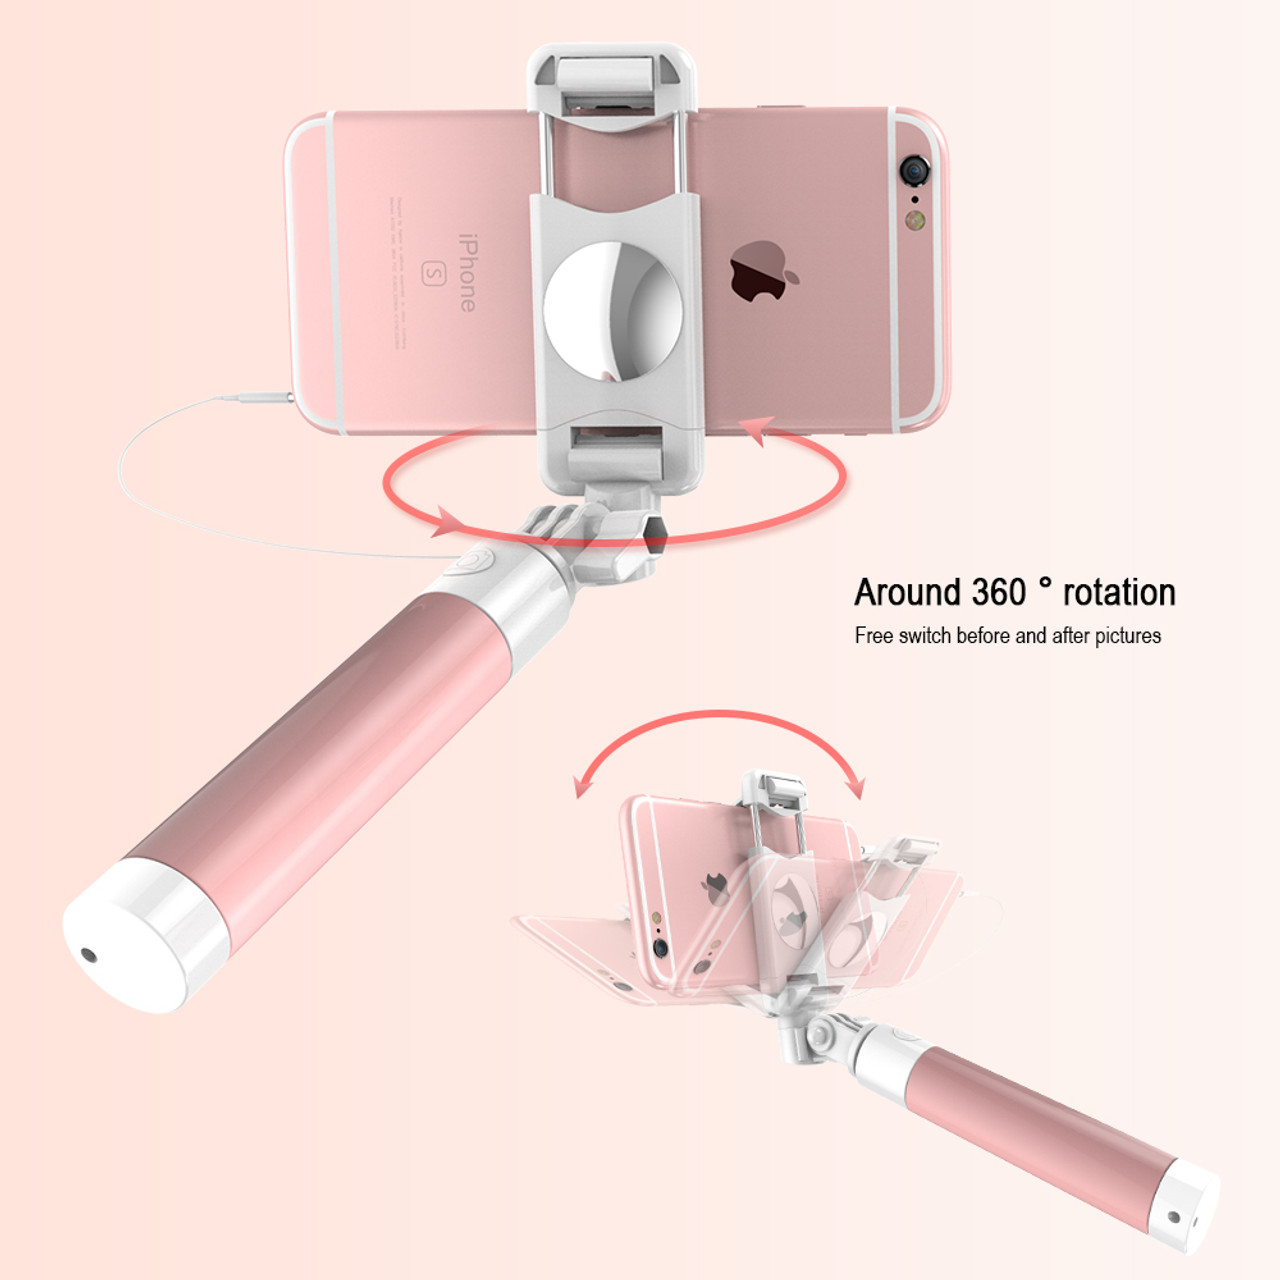 45b44aed5a6247 ... RAXFLY Selfie Stick For iPhone X 8 8 Plus 360 Degree Rotation Foldable  Self Stick Universal ...